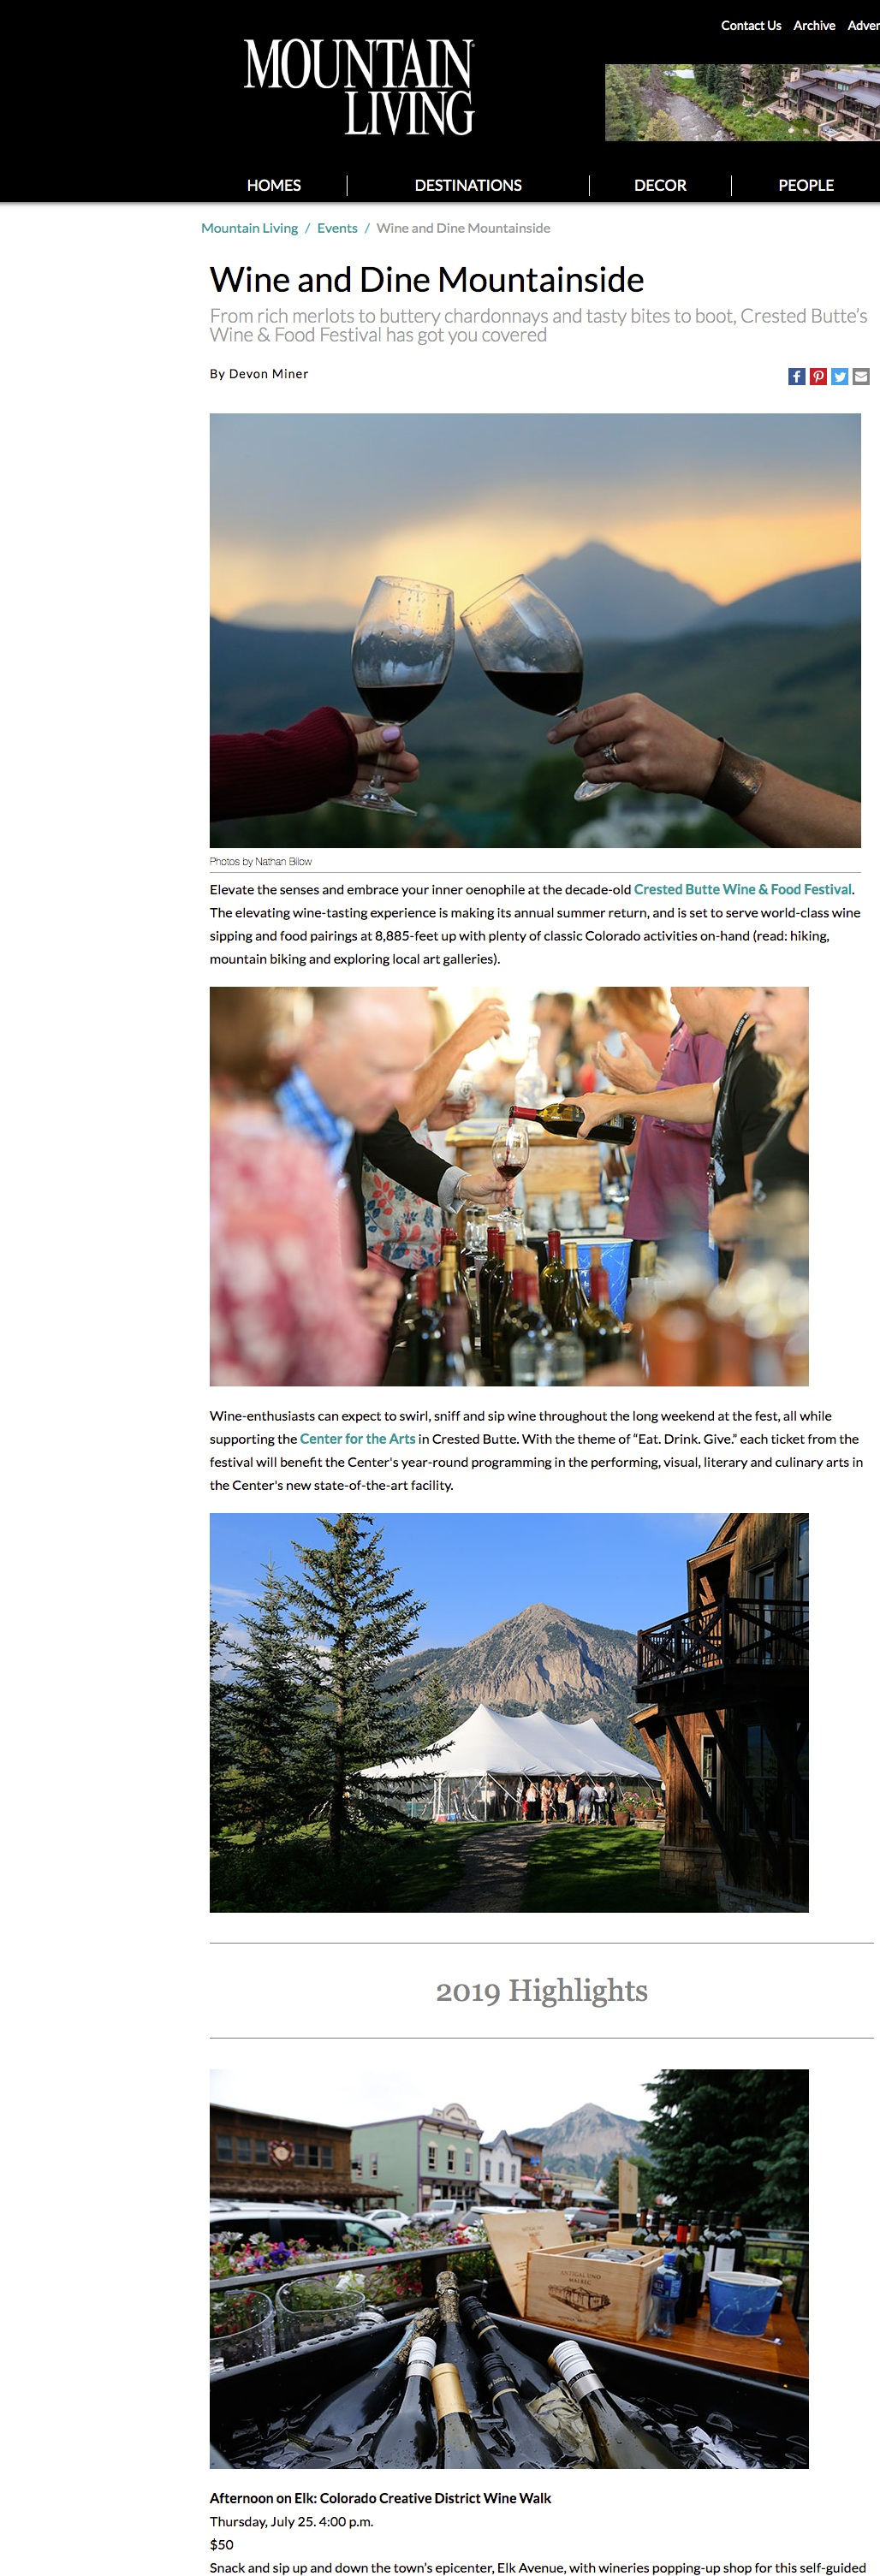 mountainliving-Events-Wine-and-Dine-Mountainside.jpg